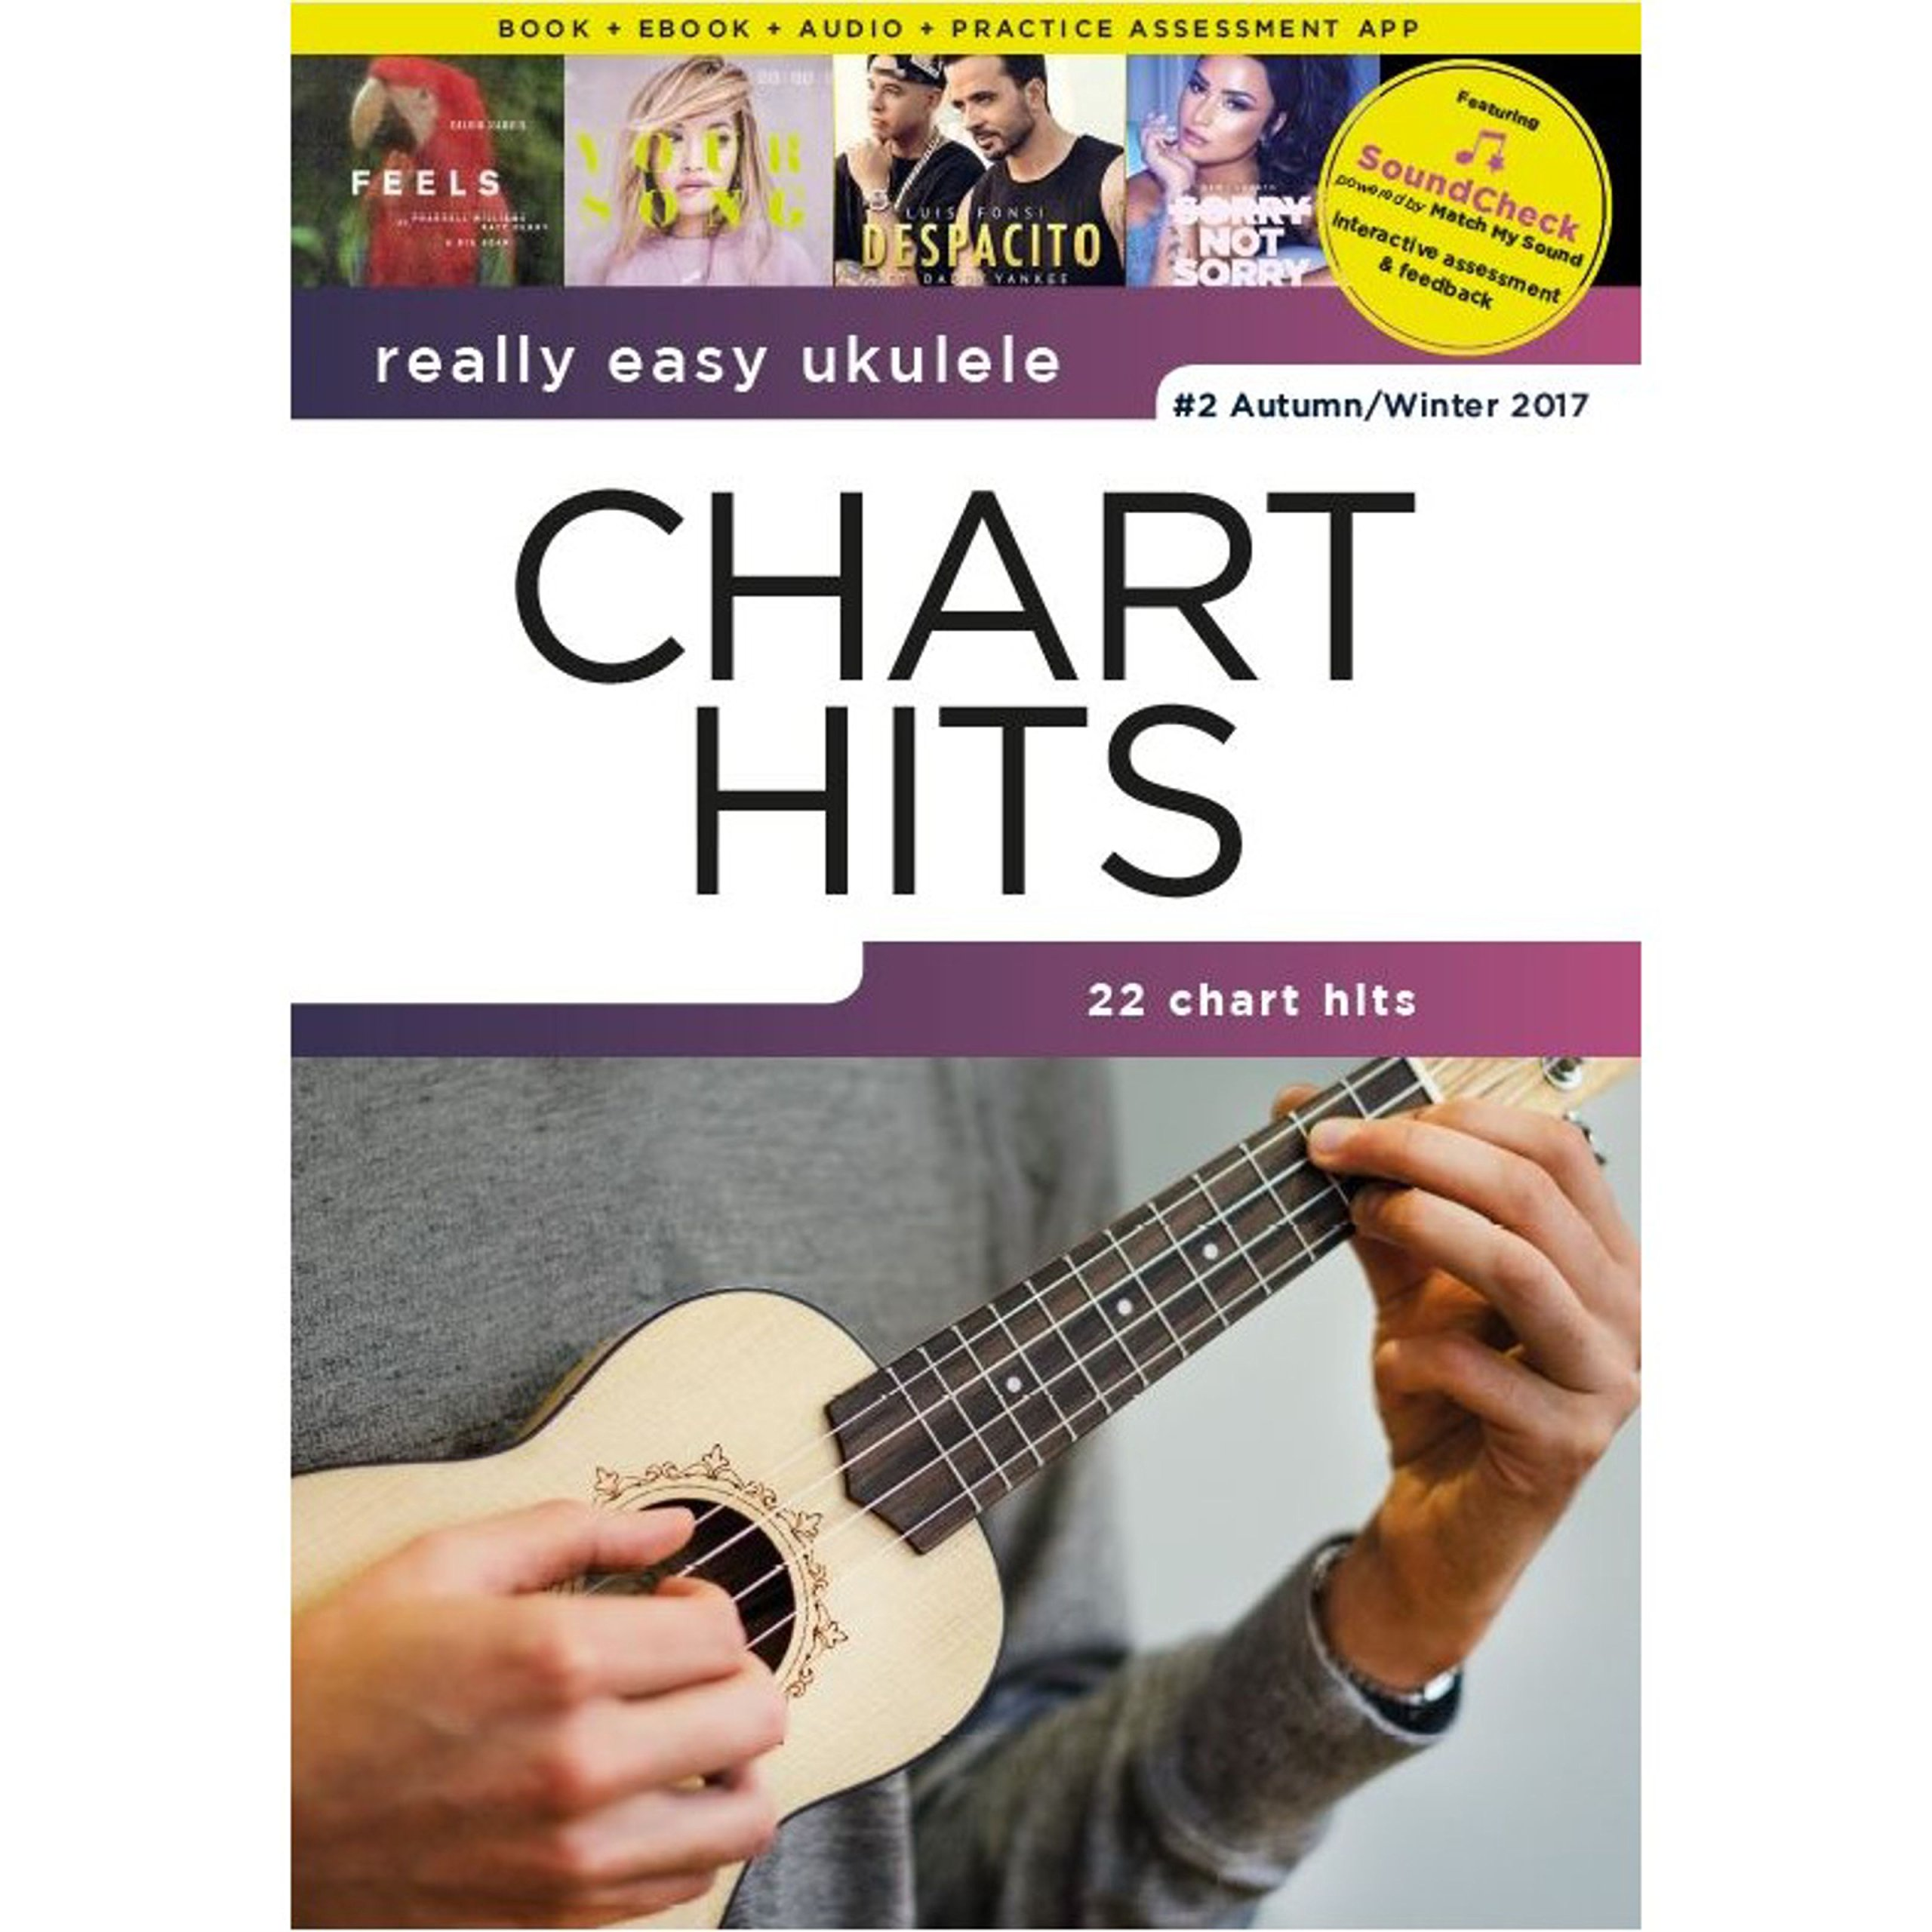 Amazon.fr - Really Easy Ukulele: Chart Hits - 2 Autumn/Winter 2017 -  Compilation - Livres